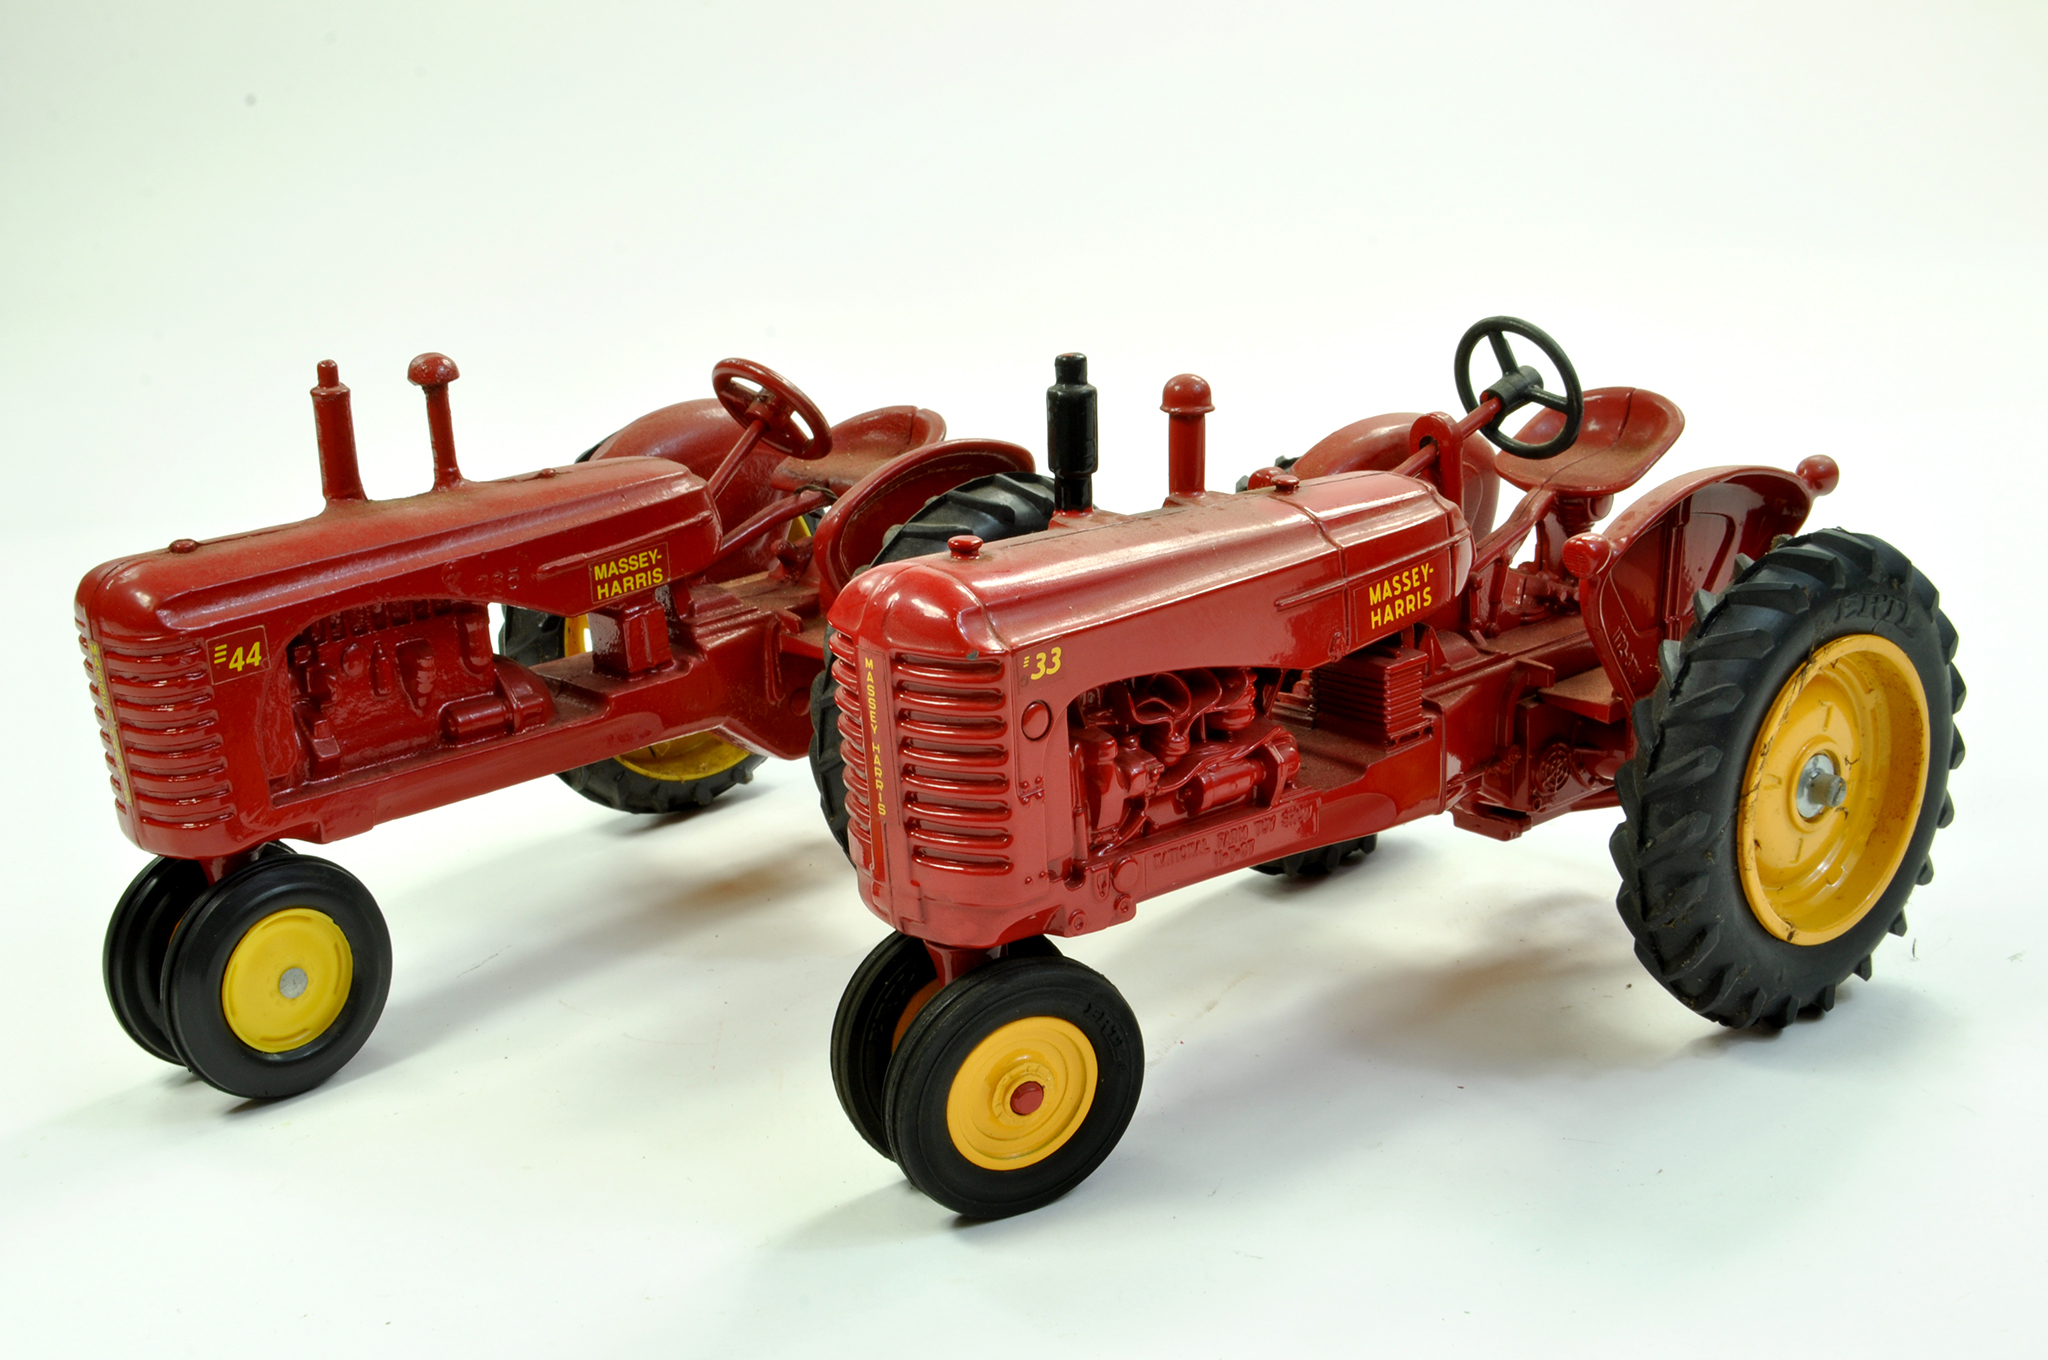 Lot 36 - Duo of Massey Harris Tractor issues in 1/16 comprising MH44 and MH33, Ertl. Generally Excellent.